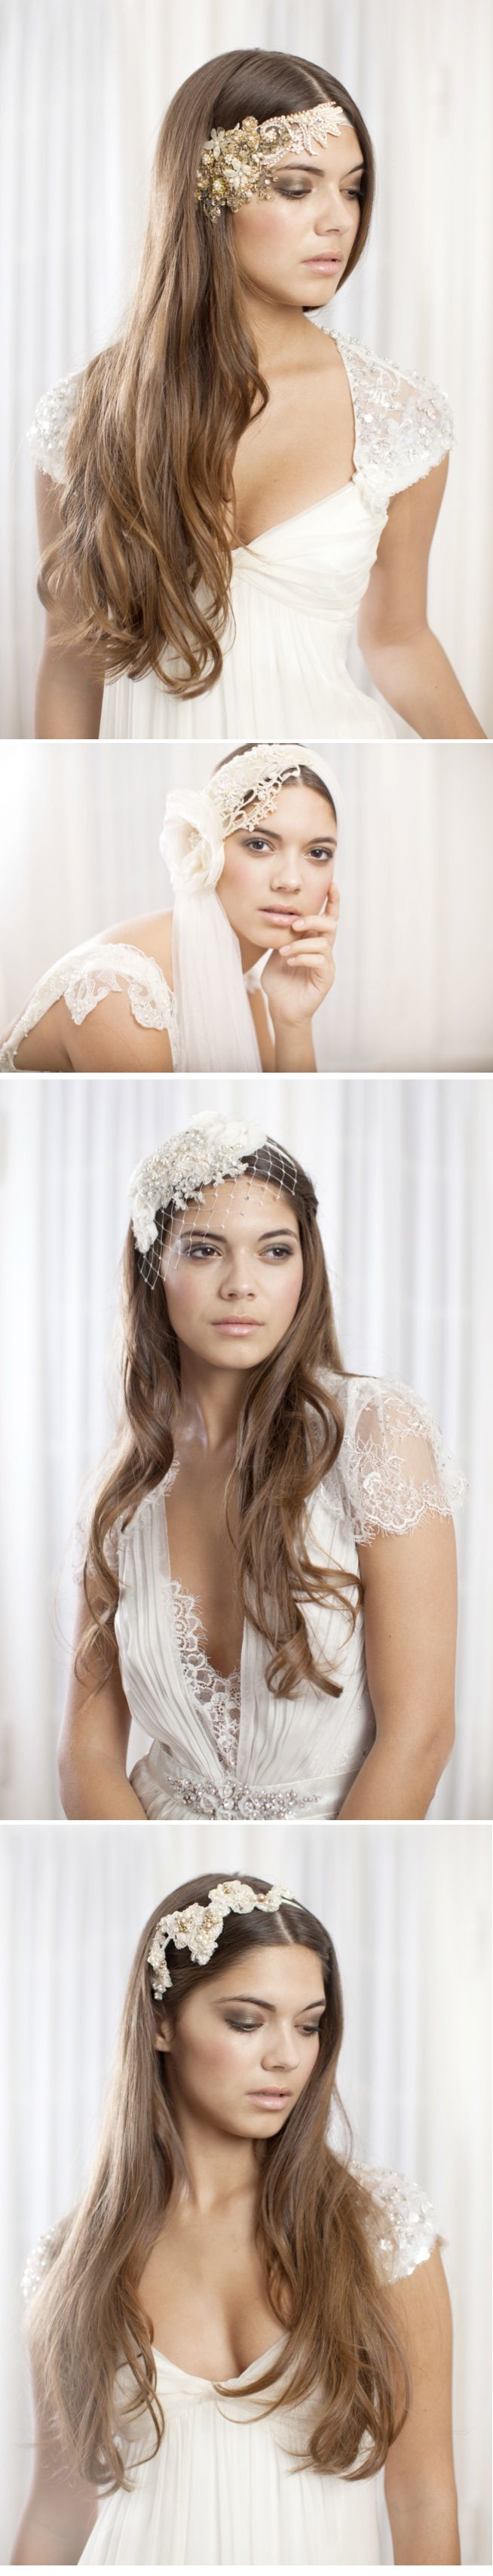 Swoon over jannie baltzer s wild nature bridal headpiece collection - Jannie Baltzer Headpieces Picture By Sandraaberg Com